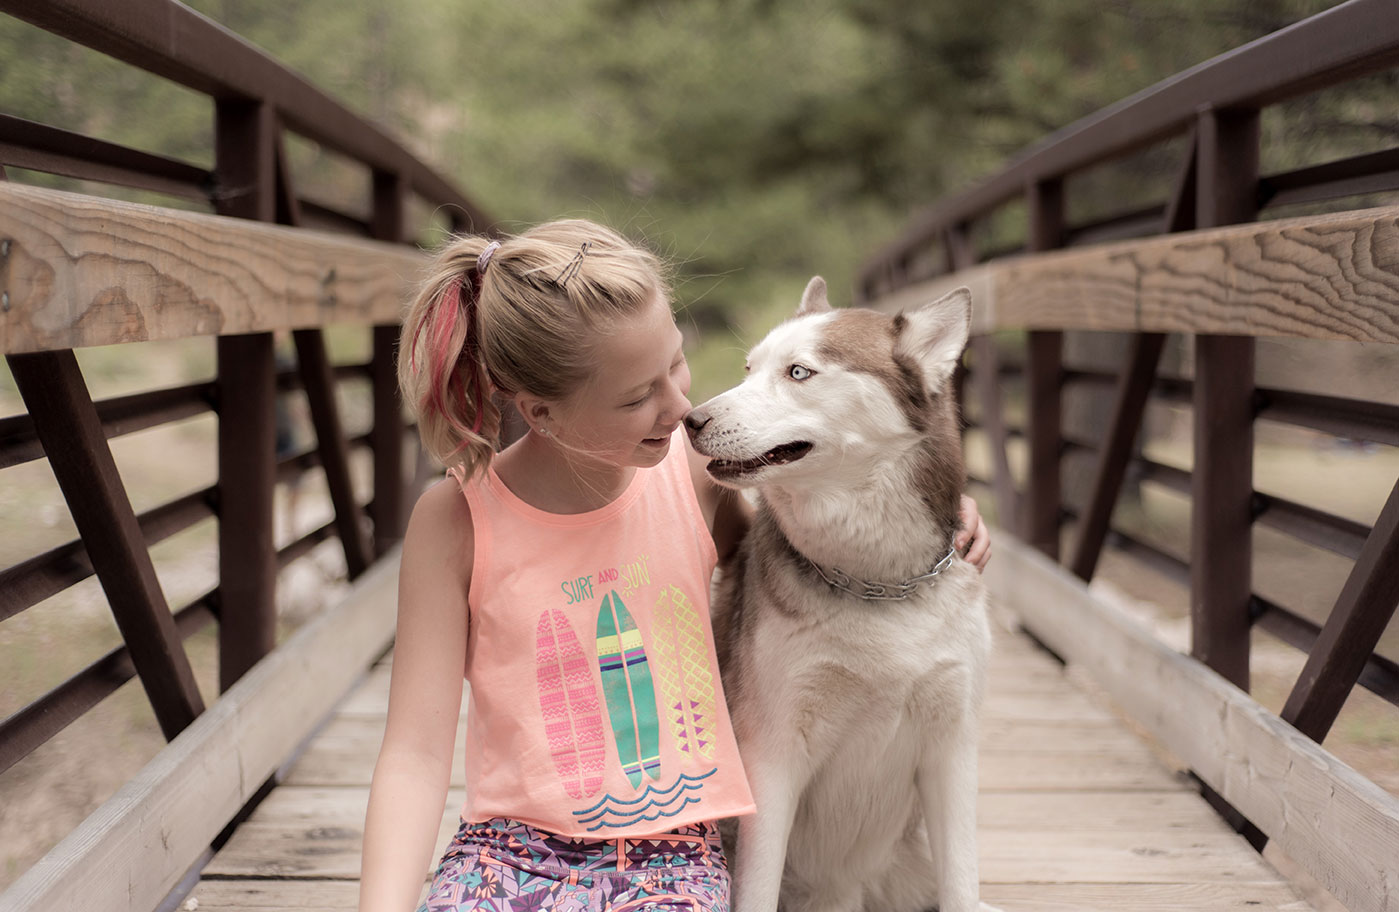 Girl and Her Husky, Photoshoot, Mount Charleston, Nevada, Lifestyle Adventure Photographer, Daniel Britton